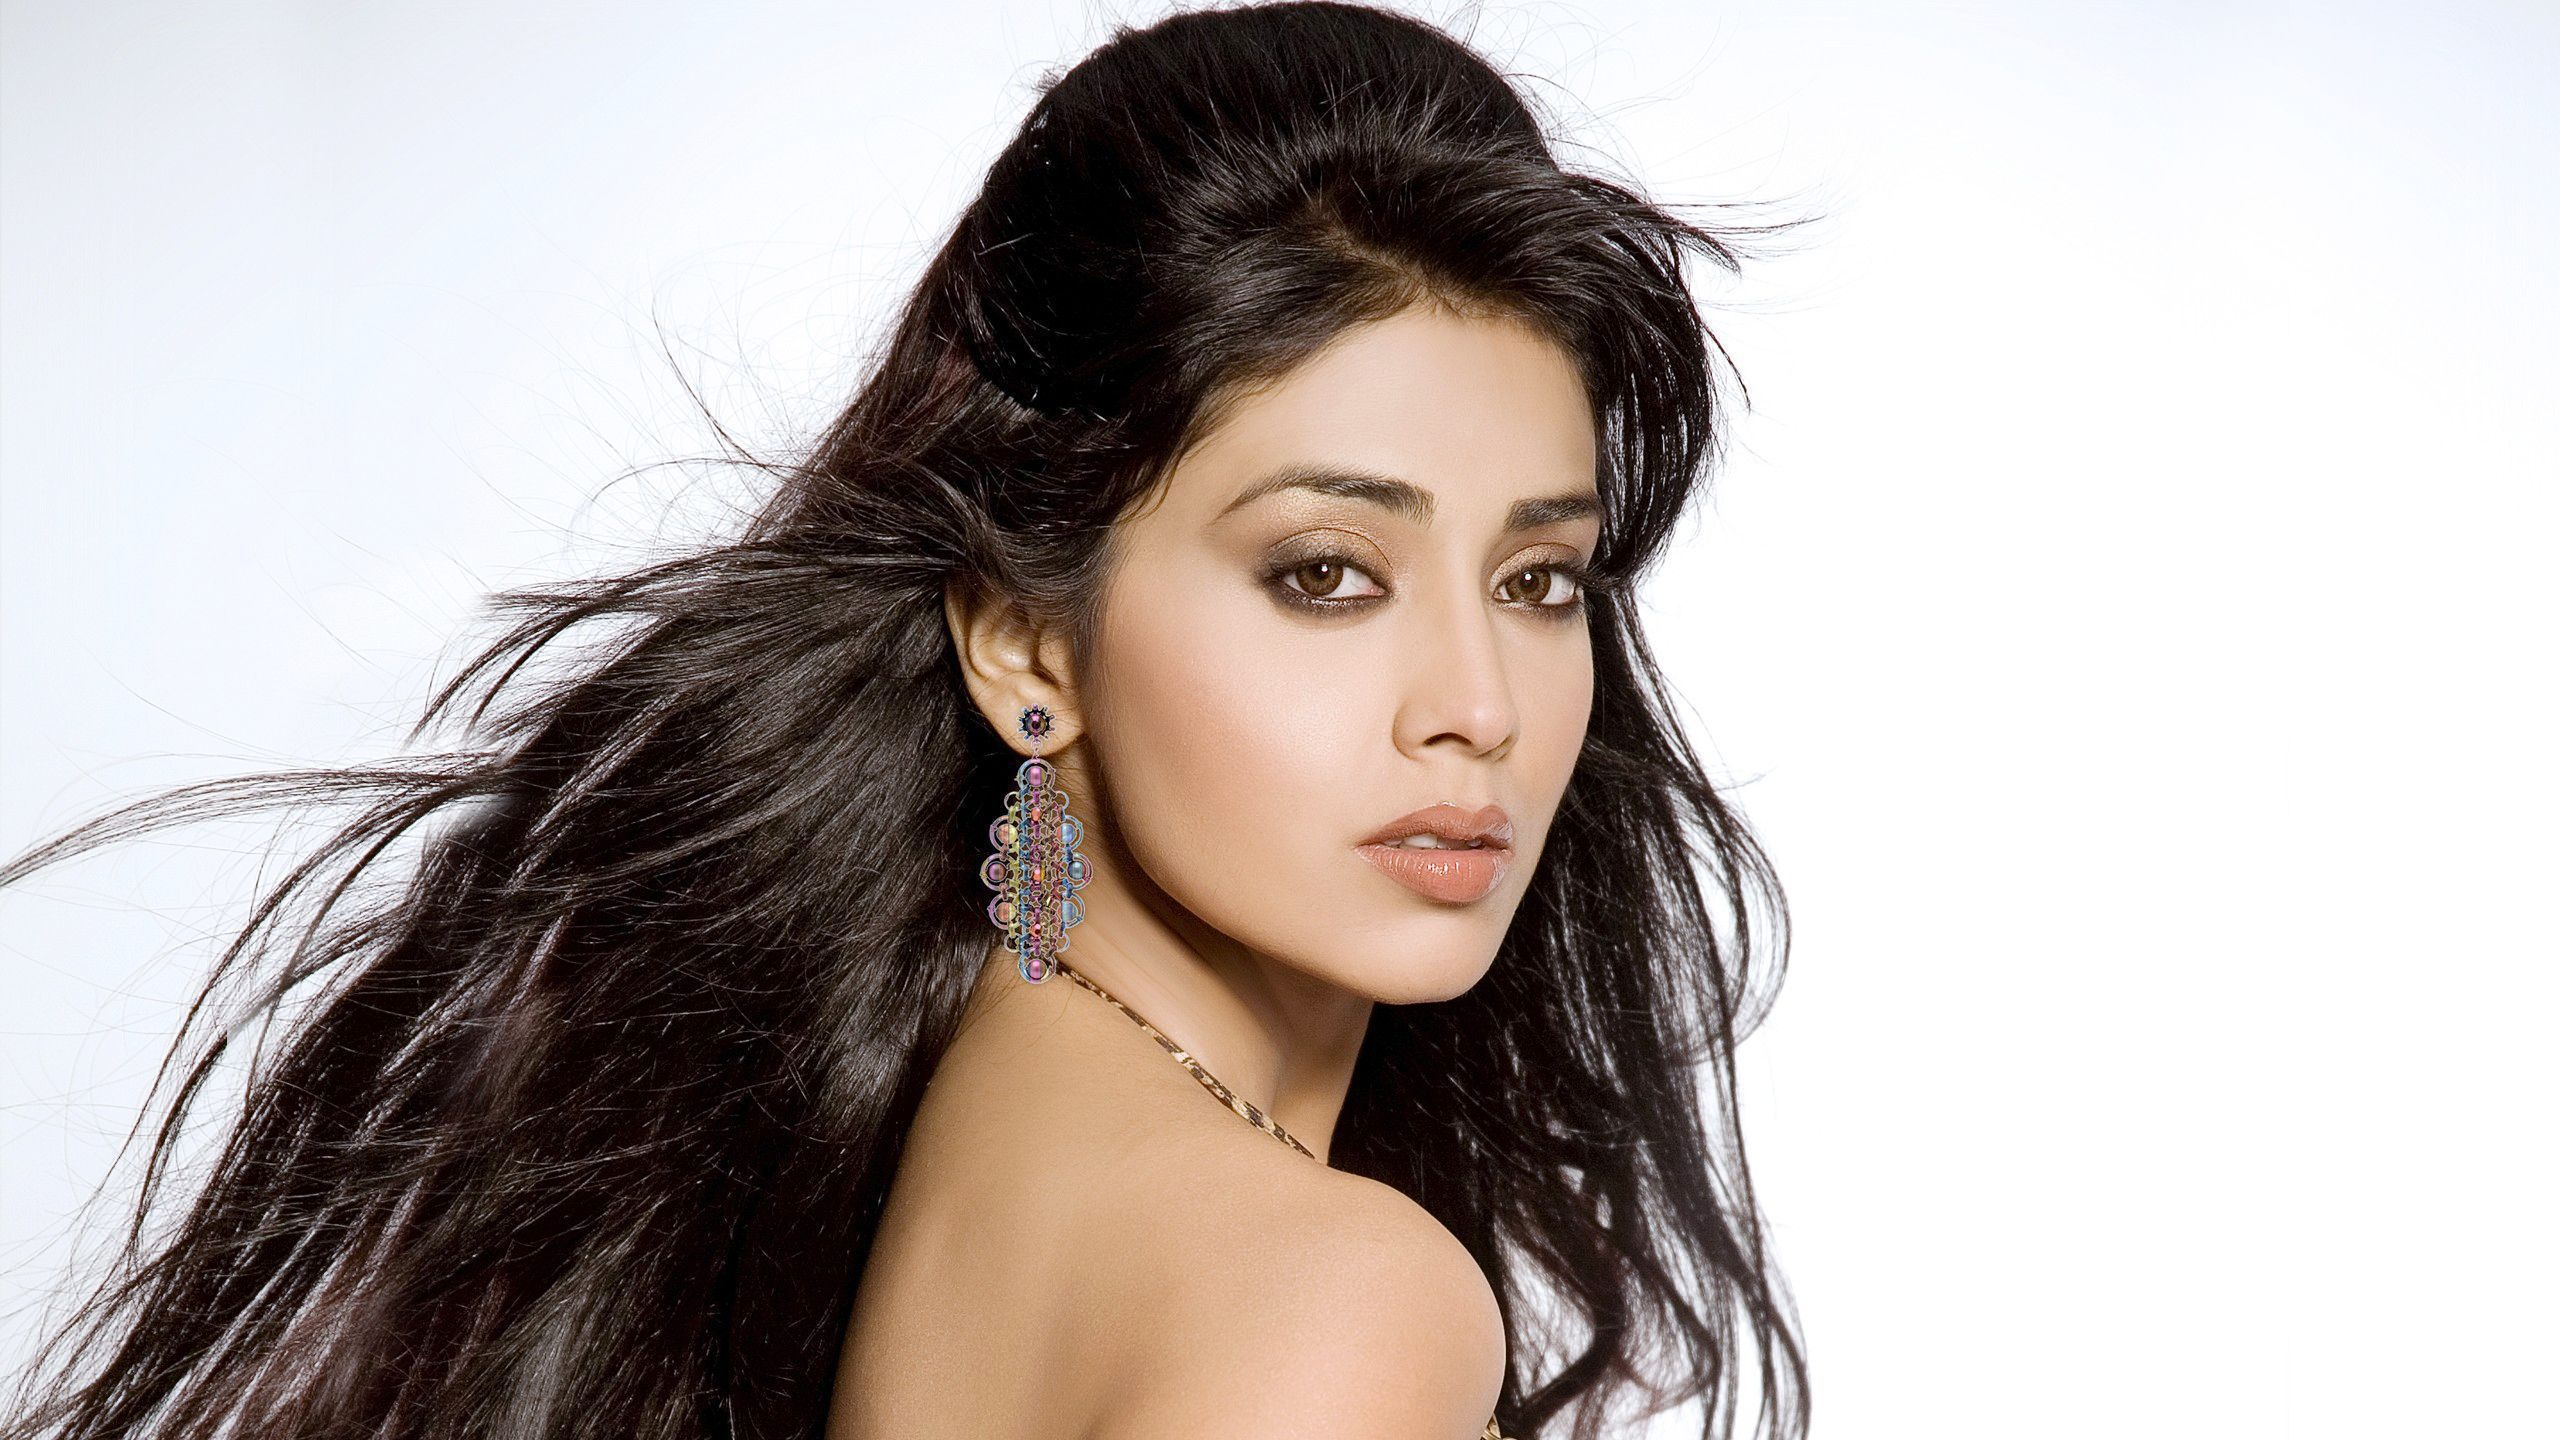 Shriya Saran Wallpapers Backgrounds